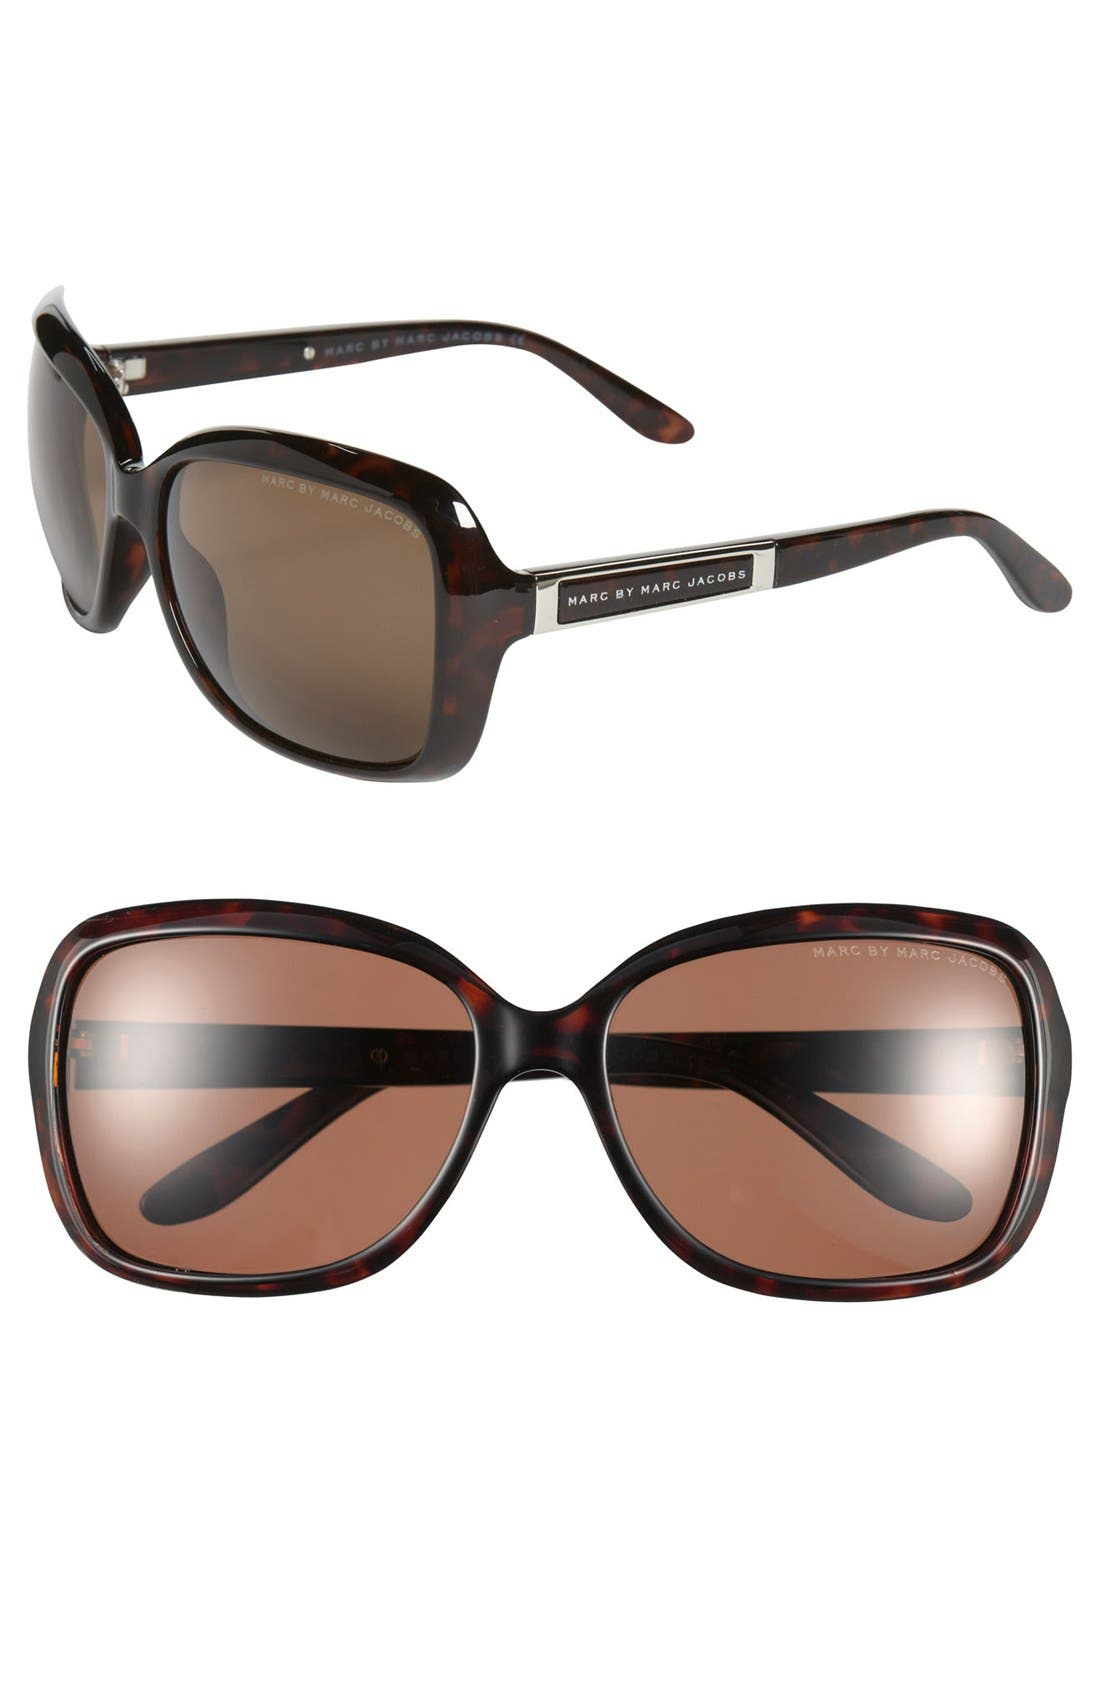 Main Image - MARC BY MARC JACOBS 58mm Polarized Sunglasses